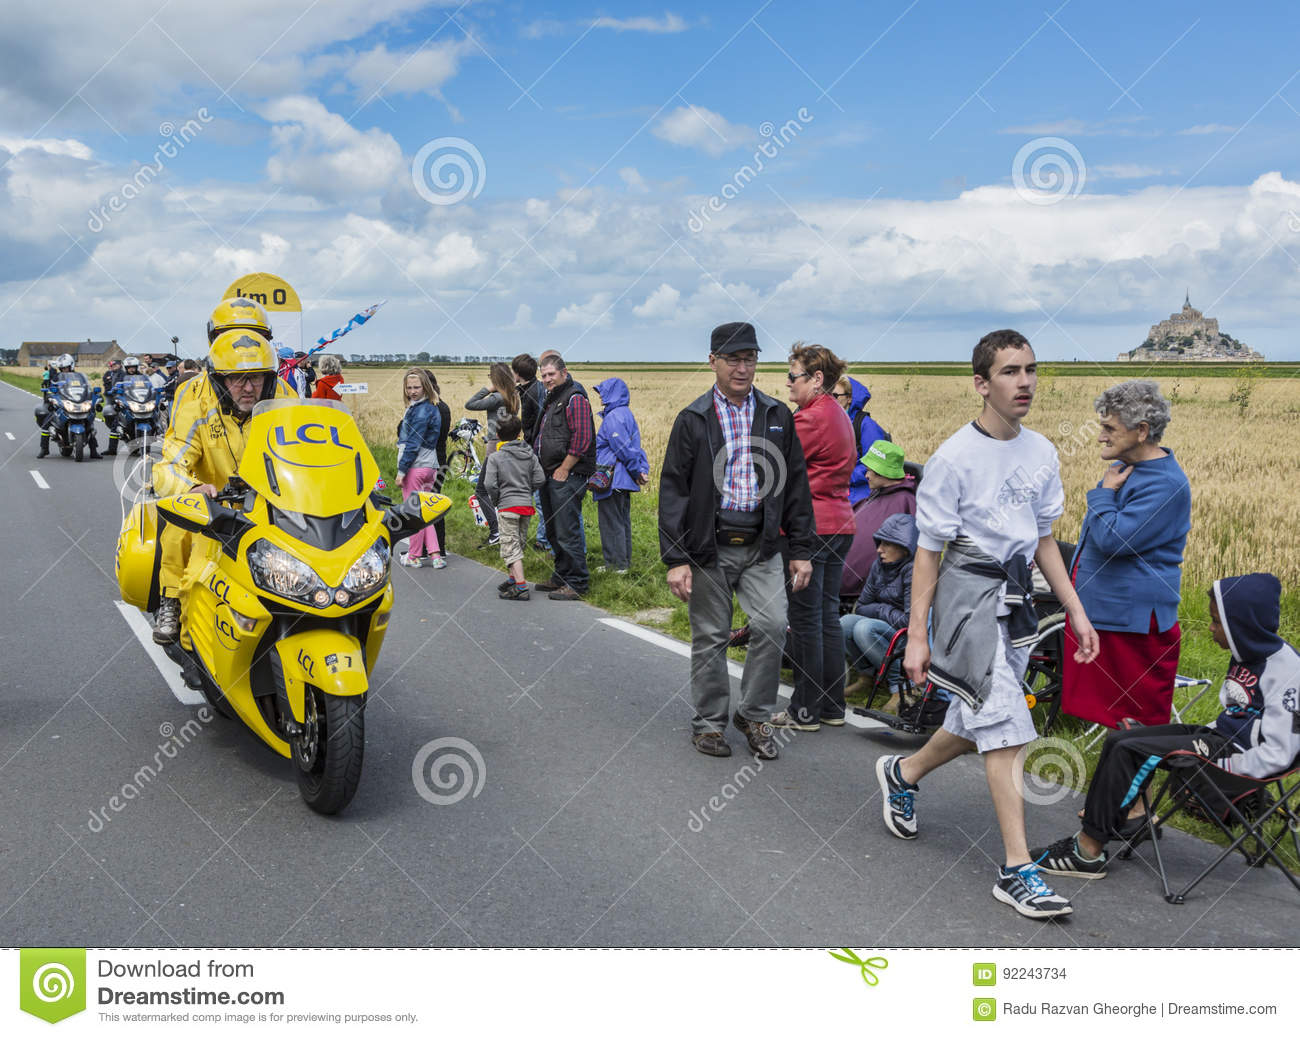 The Yellow Bike at the Start of Tour de France 2016